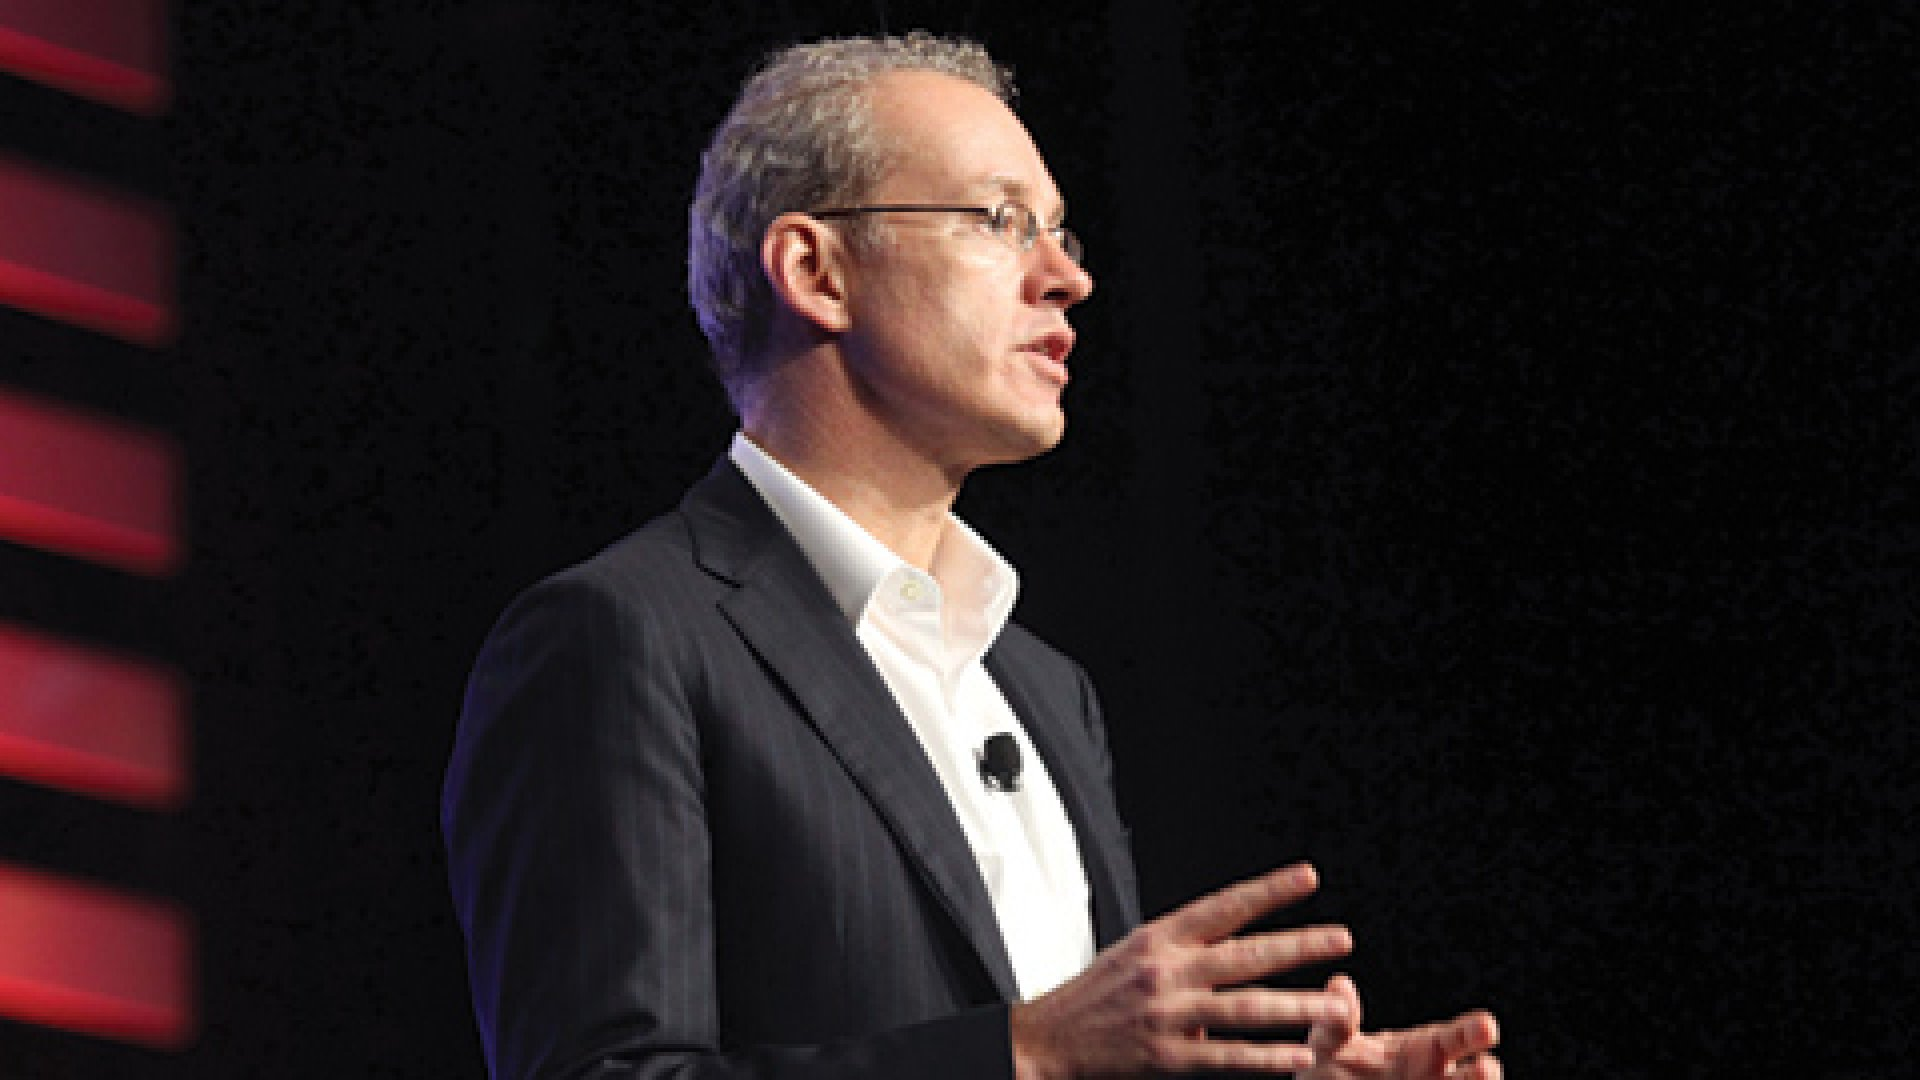 """Kevin Ryan spoke about """"hirer's remorse"""" at the Inc. 500 Conference in 2011."""